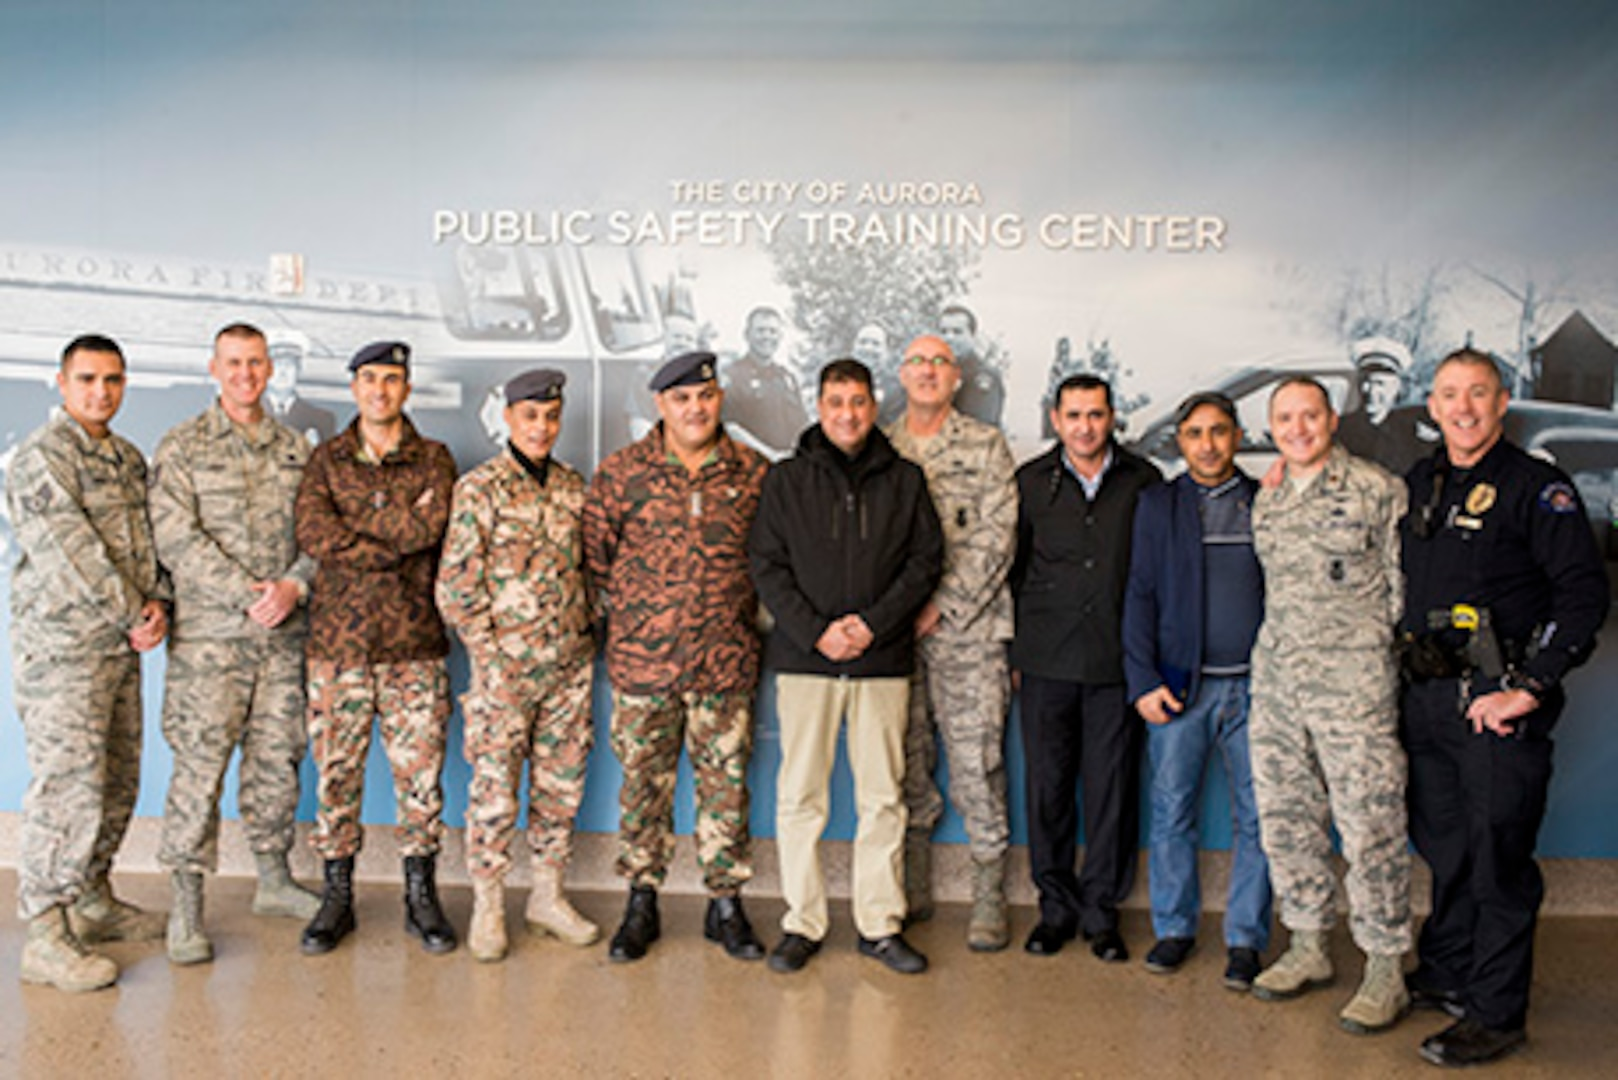 ​Members of the Royal Jordanian Air Force Ground Defense, Jordanian